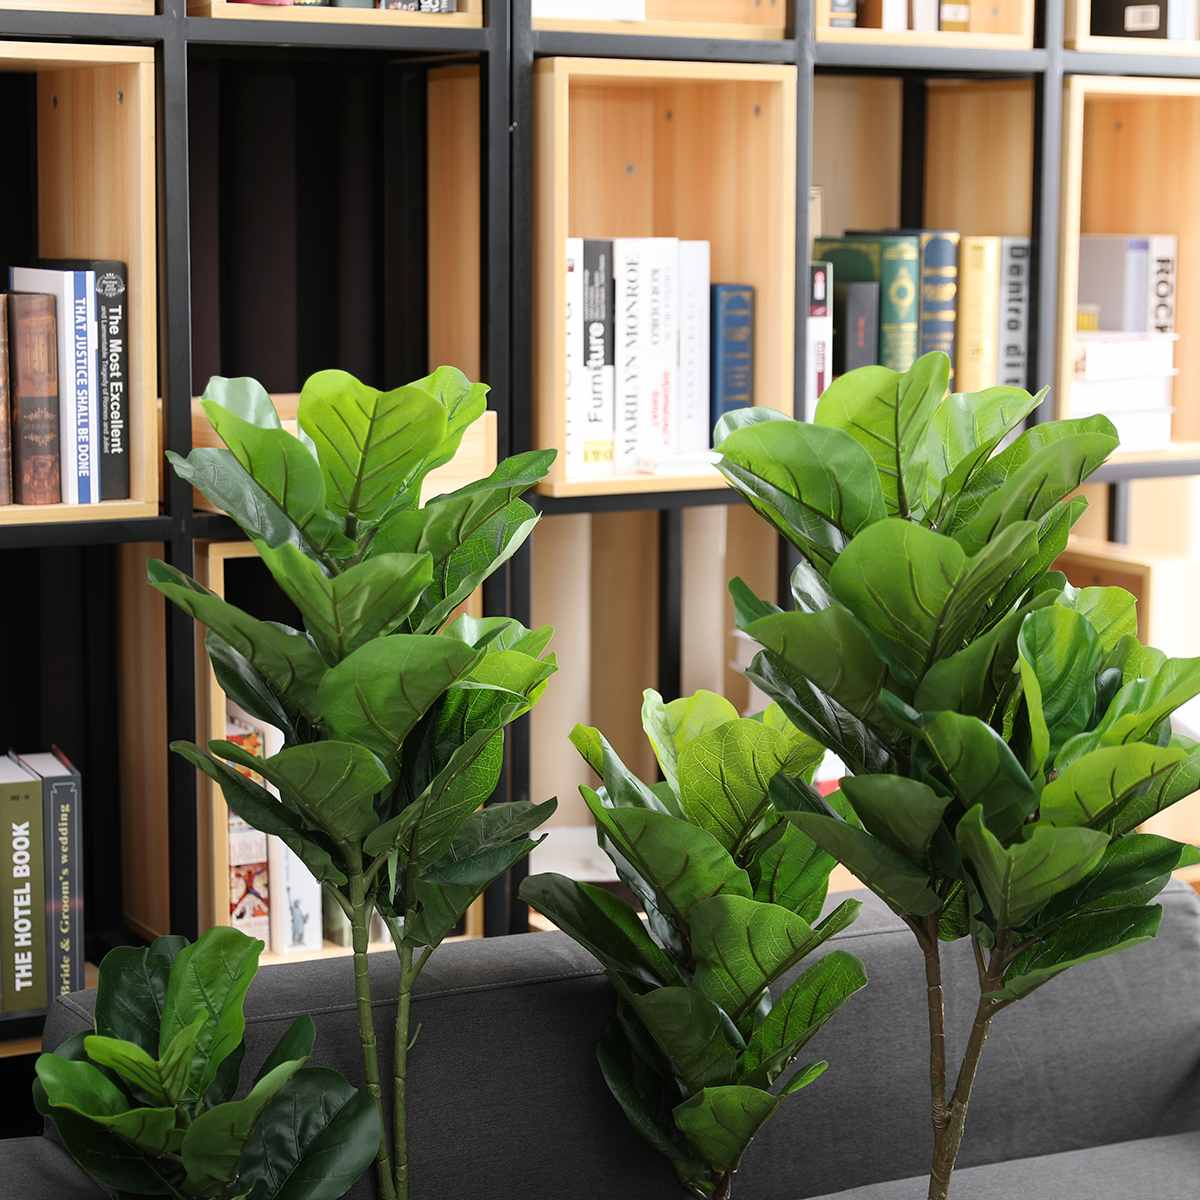 4 Sizes Plastic Artificial Plants Ficus Lyrata Green Leaves Potted Plant Home Wedding Party DIY Ornament Home Garden Decoration